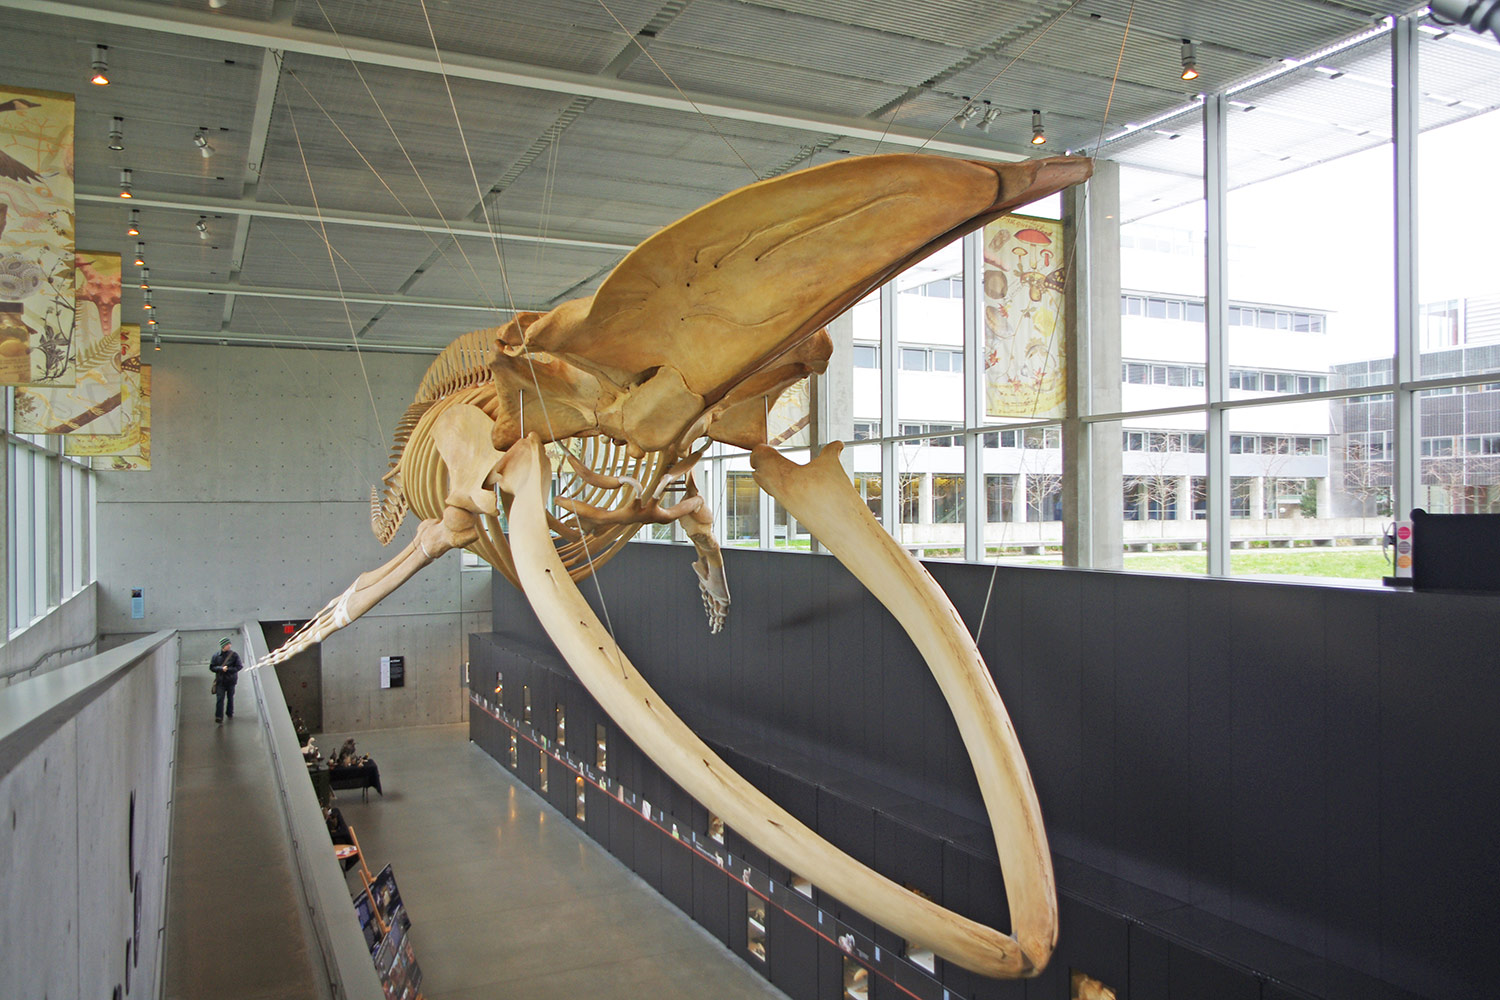 Largest skeleton suspended without external support